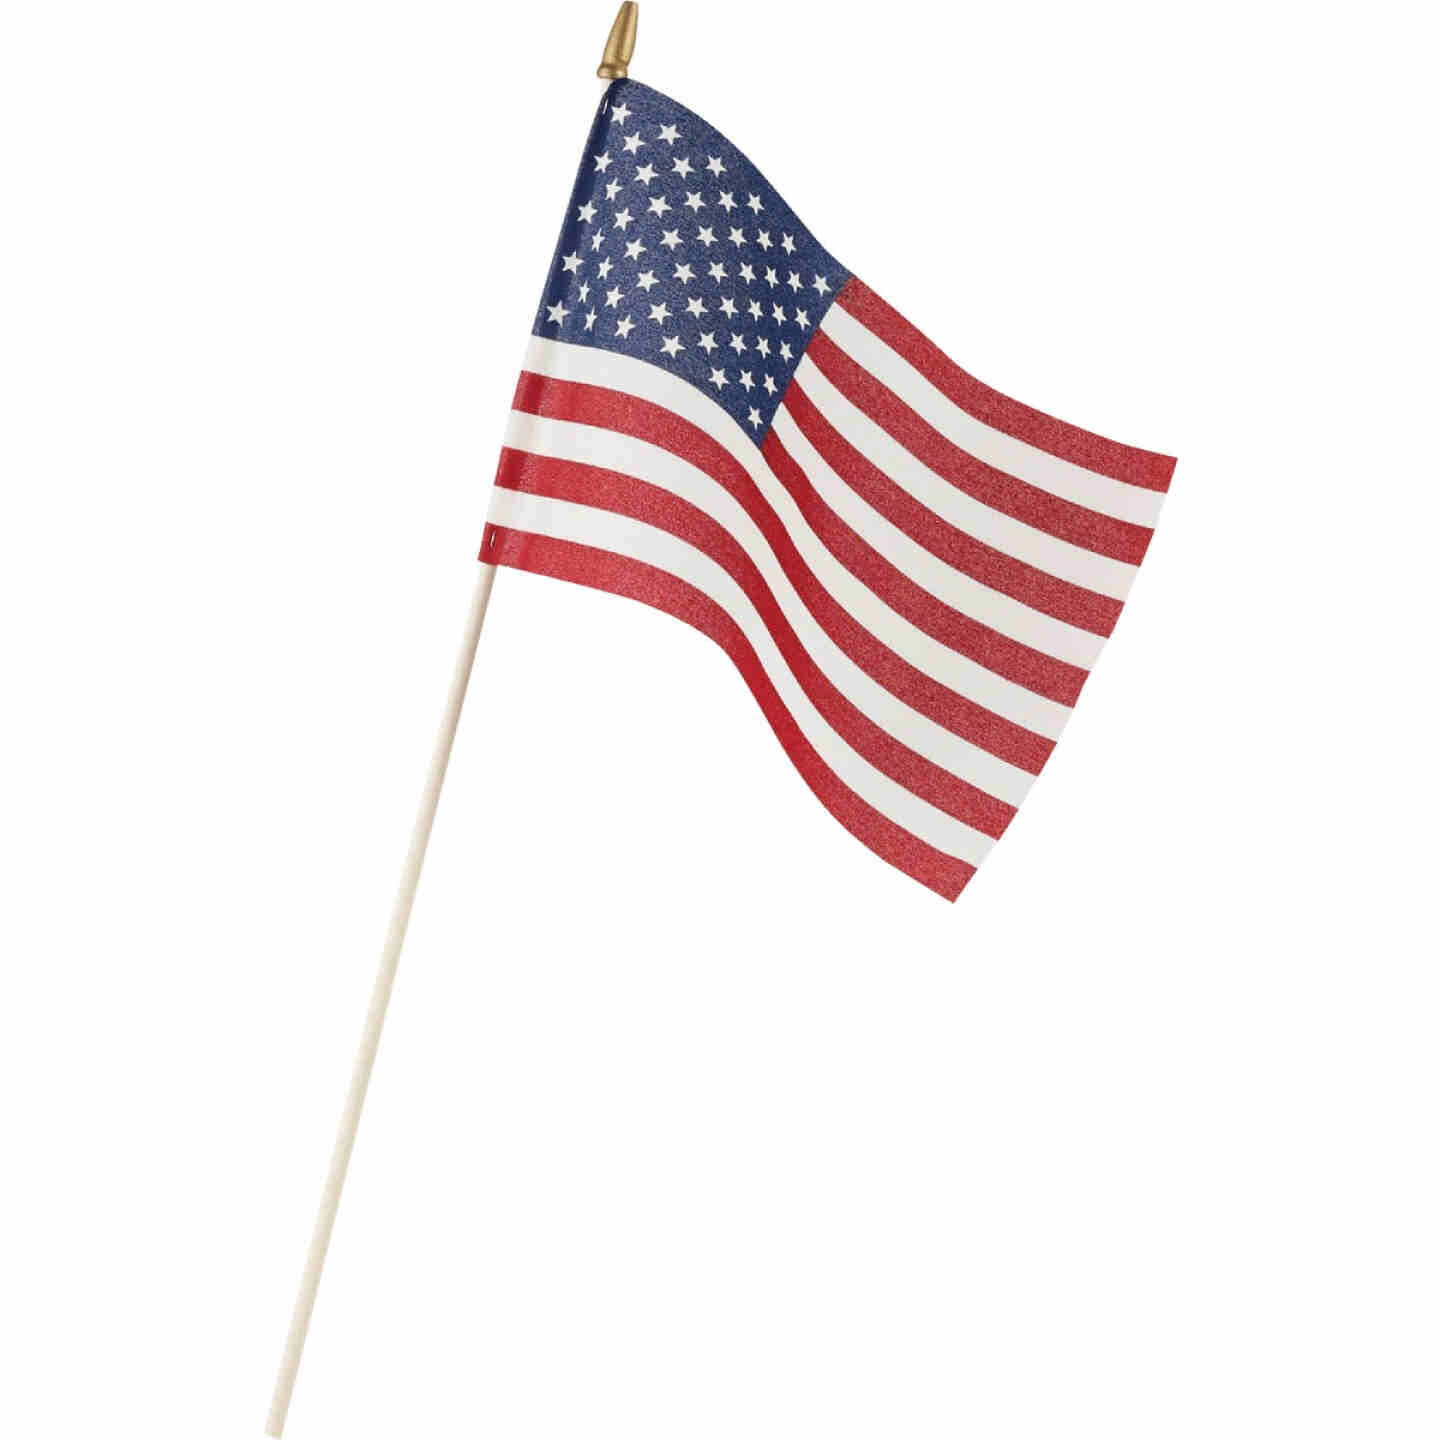 Valley Forge 8 In. x 12 In. Polycotton Stick American Flag Image 1